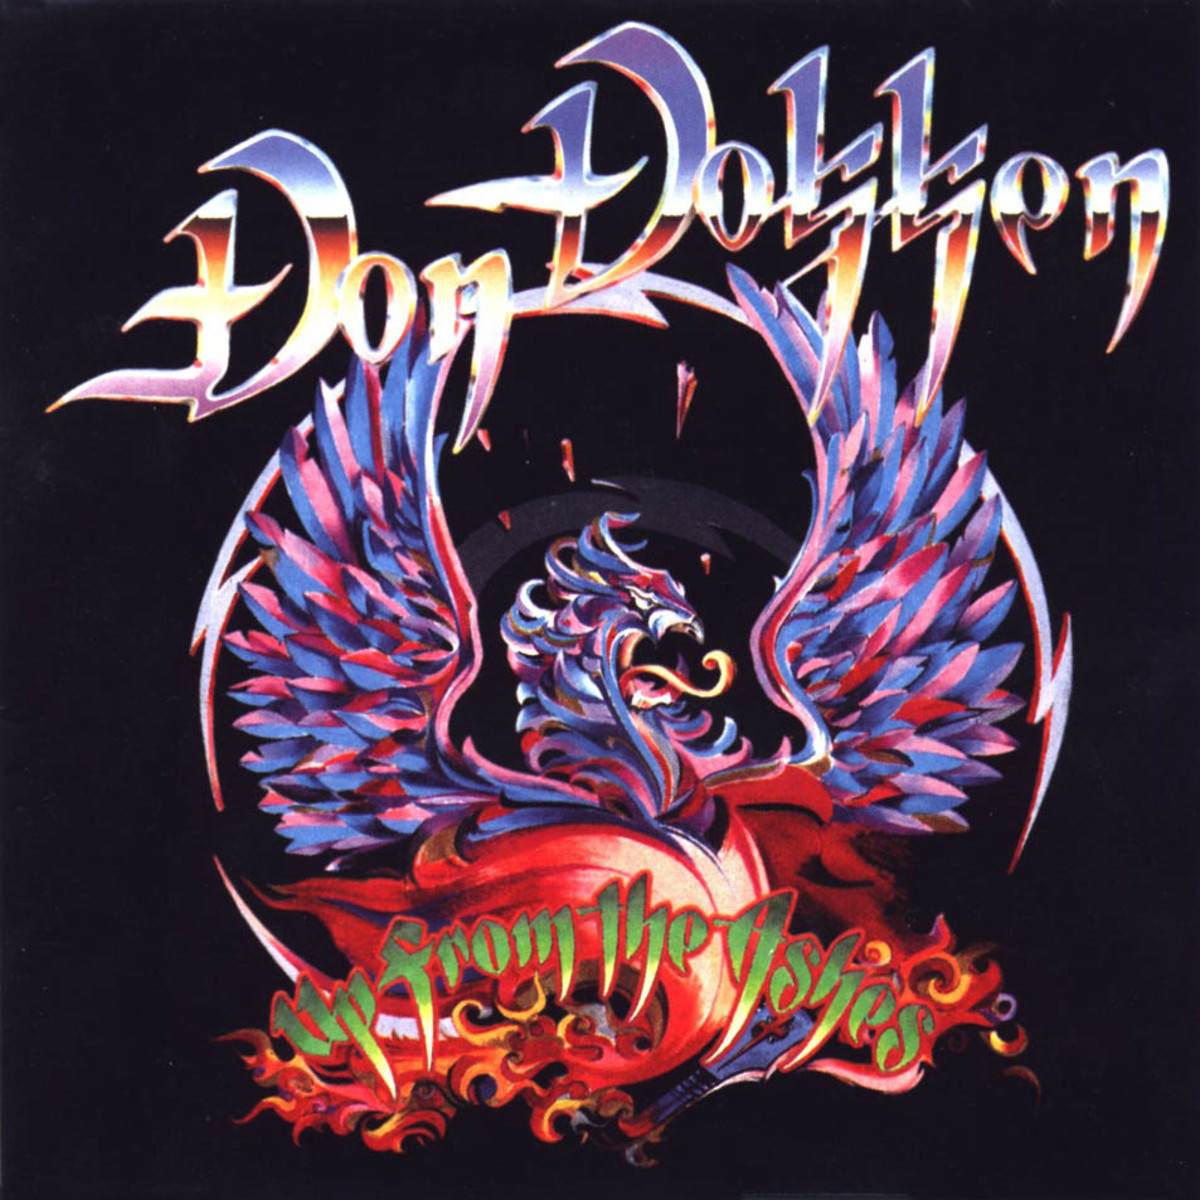 Dokken Vocalist Don Dokken explores a different side of himself with his 1990 solo album Up From the Ashes